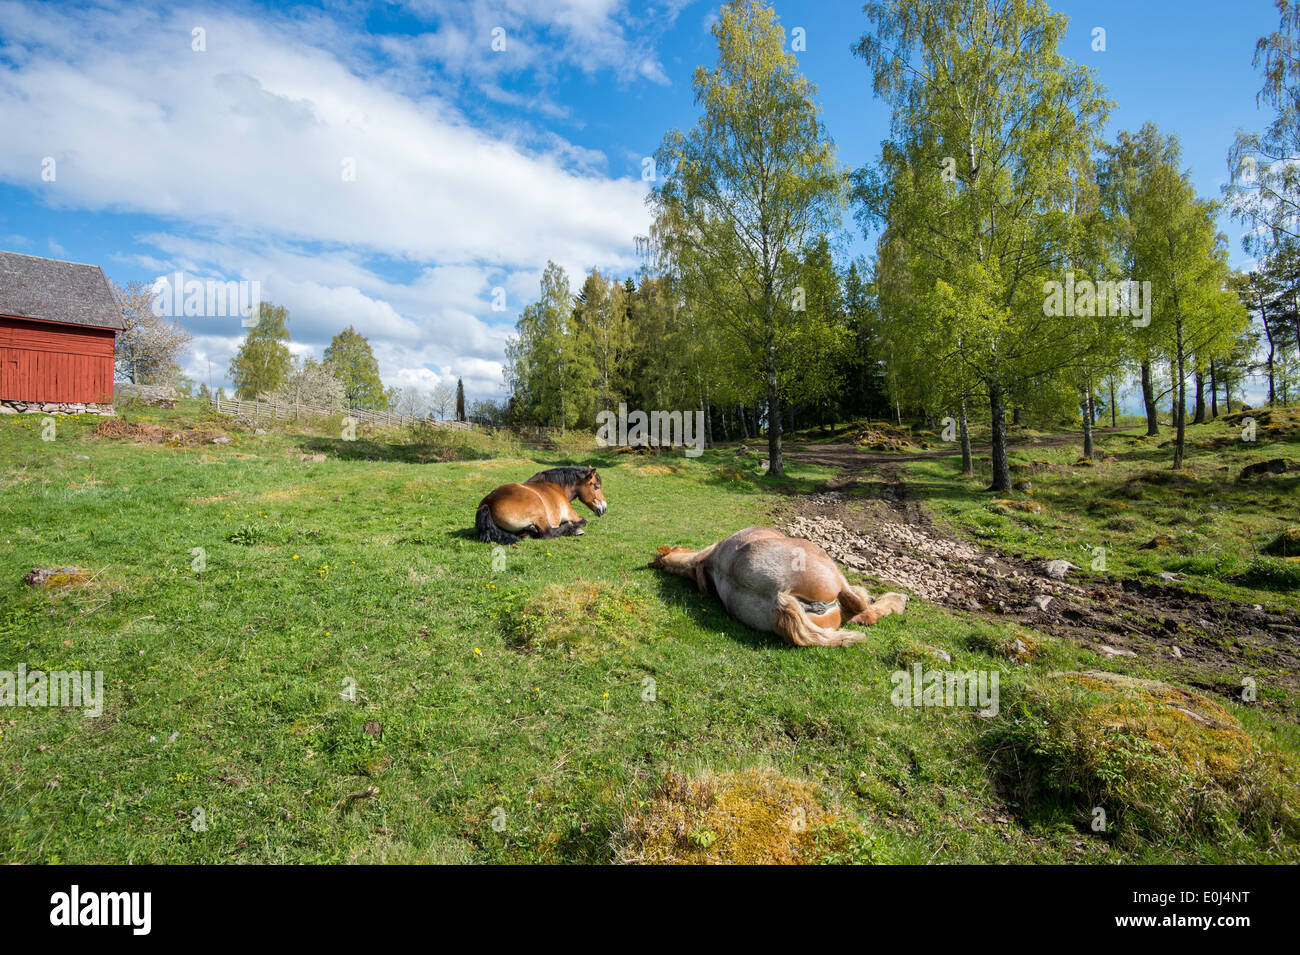 Springtime in Sweden - Ardennes horses resting on a sunny day in the countryside of Sweden - Stock Image